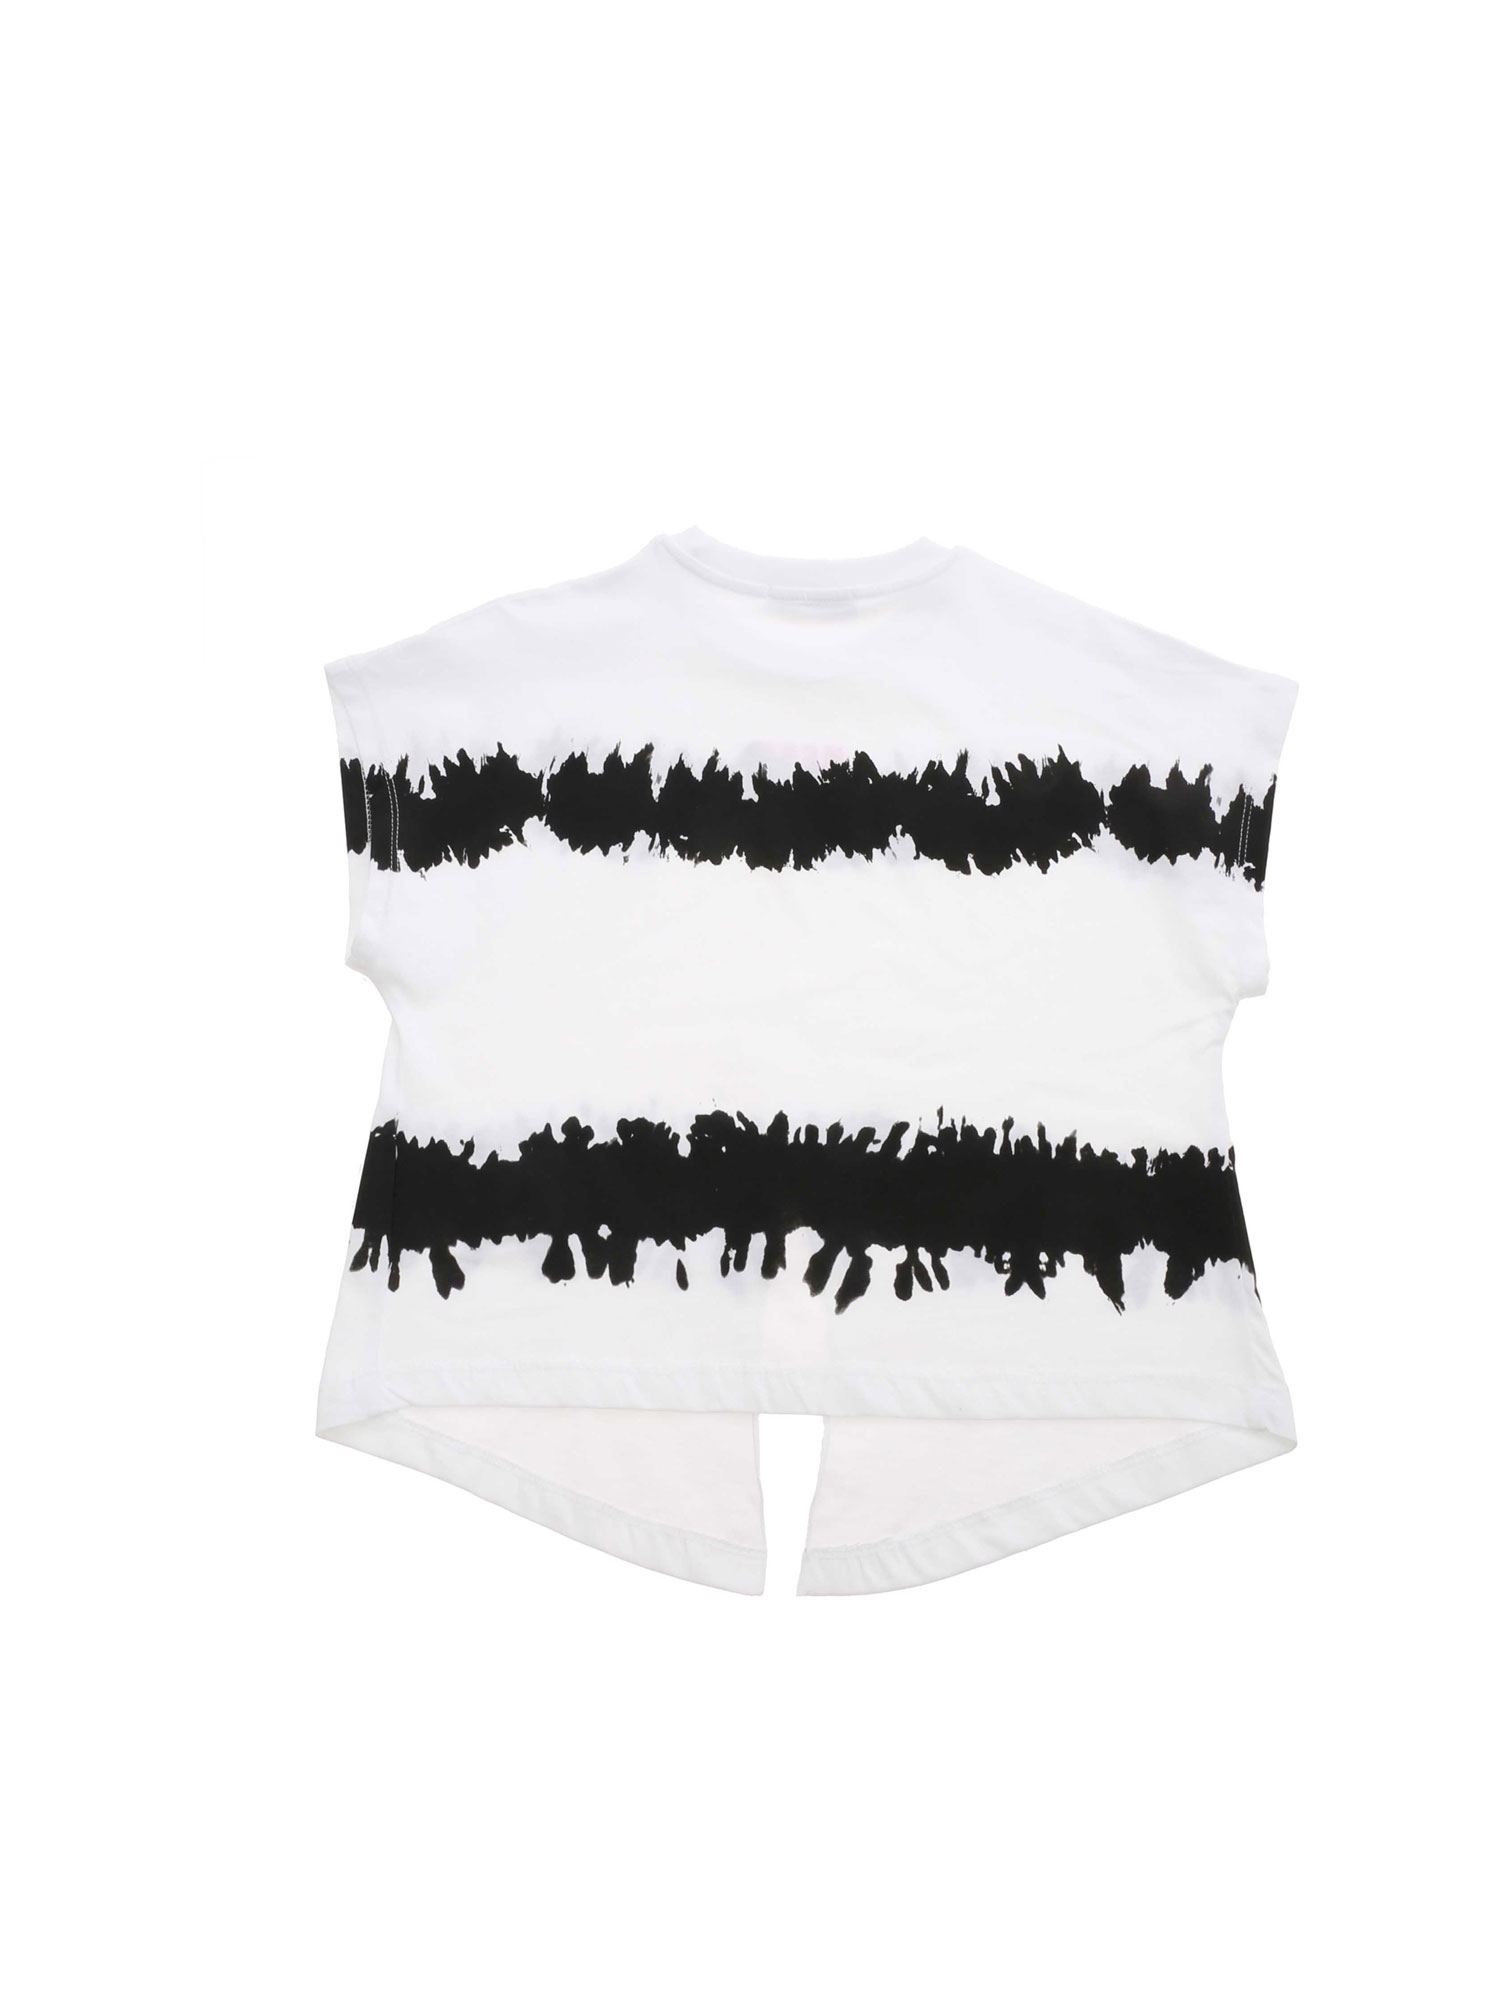 MSGM T-shirts CUT-OUT T-SHIRT IN WHITE AND BLACK